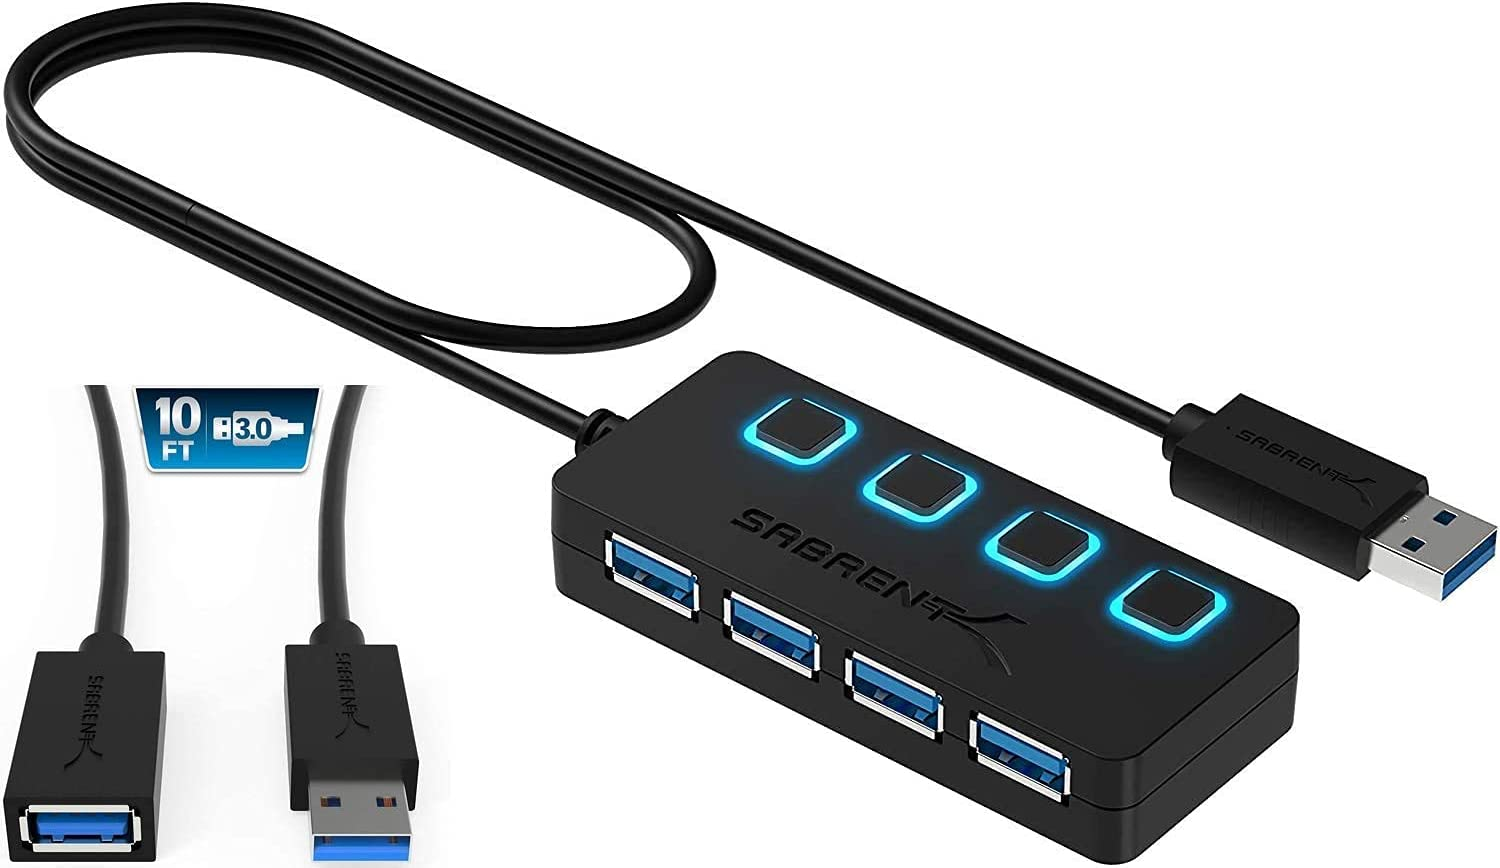 Sabrent 4-Port USB 3.0 Hub + 10 Ft 22AWG USB 3.0 Extension Cable - A-Male to A-Female in Black